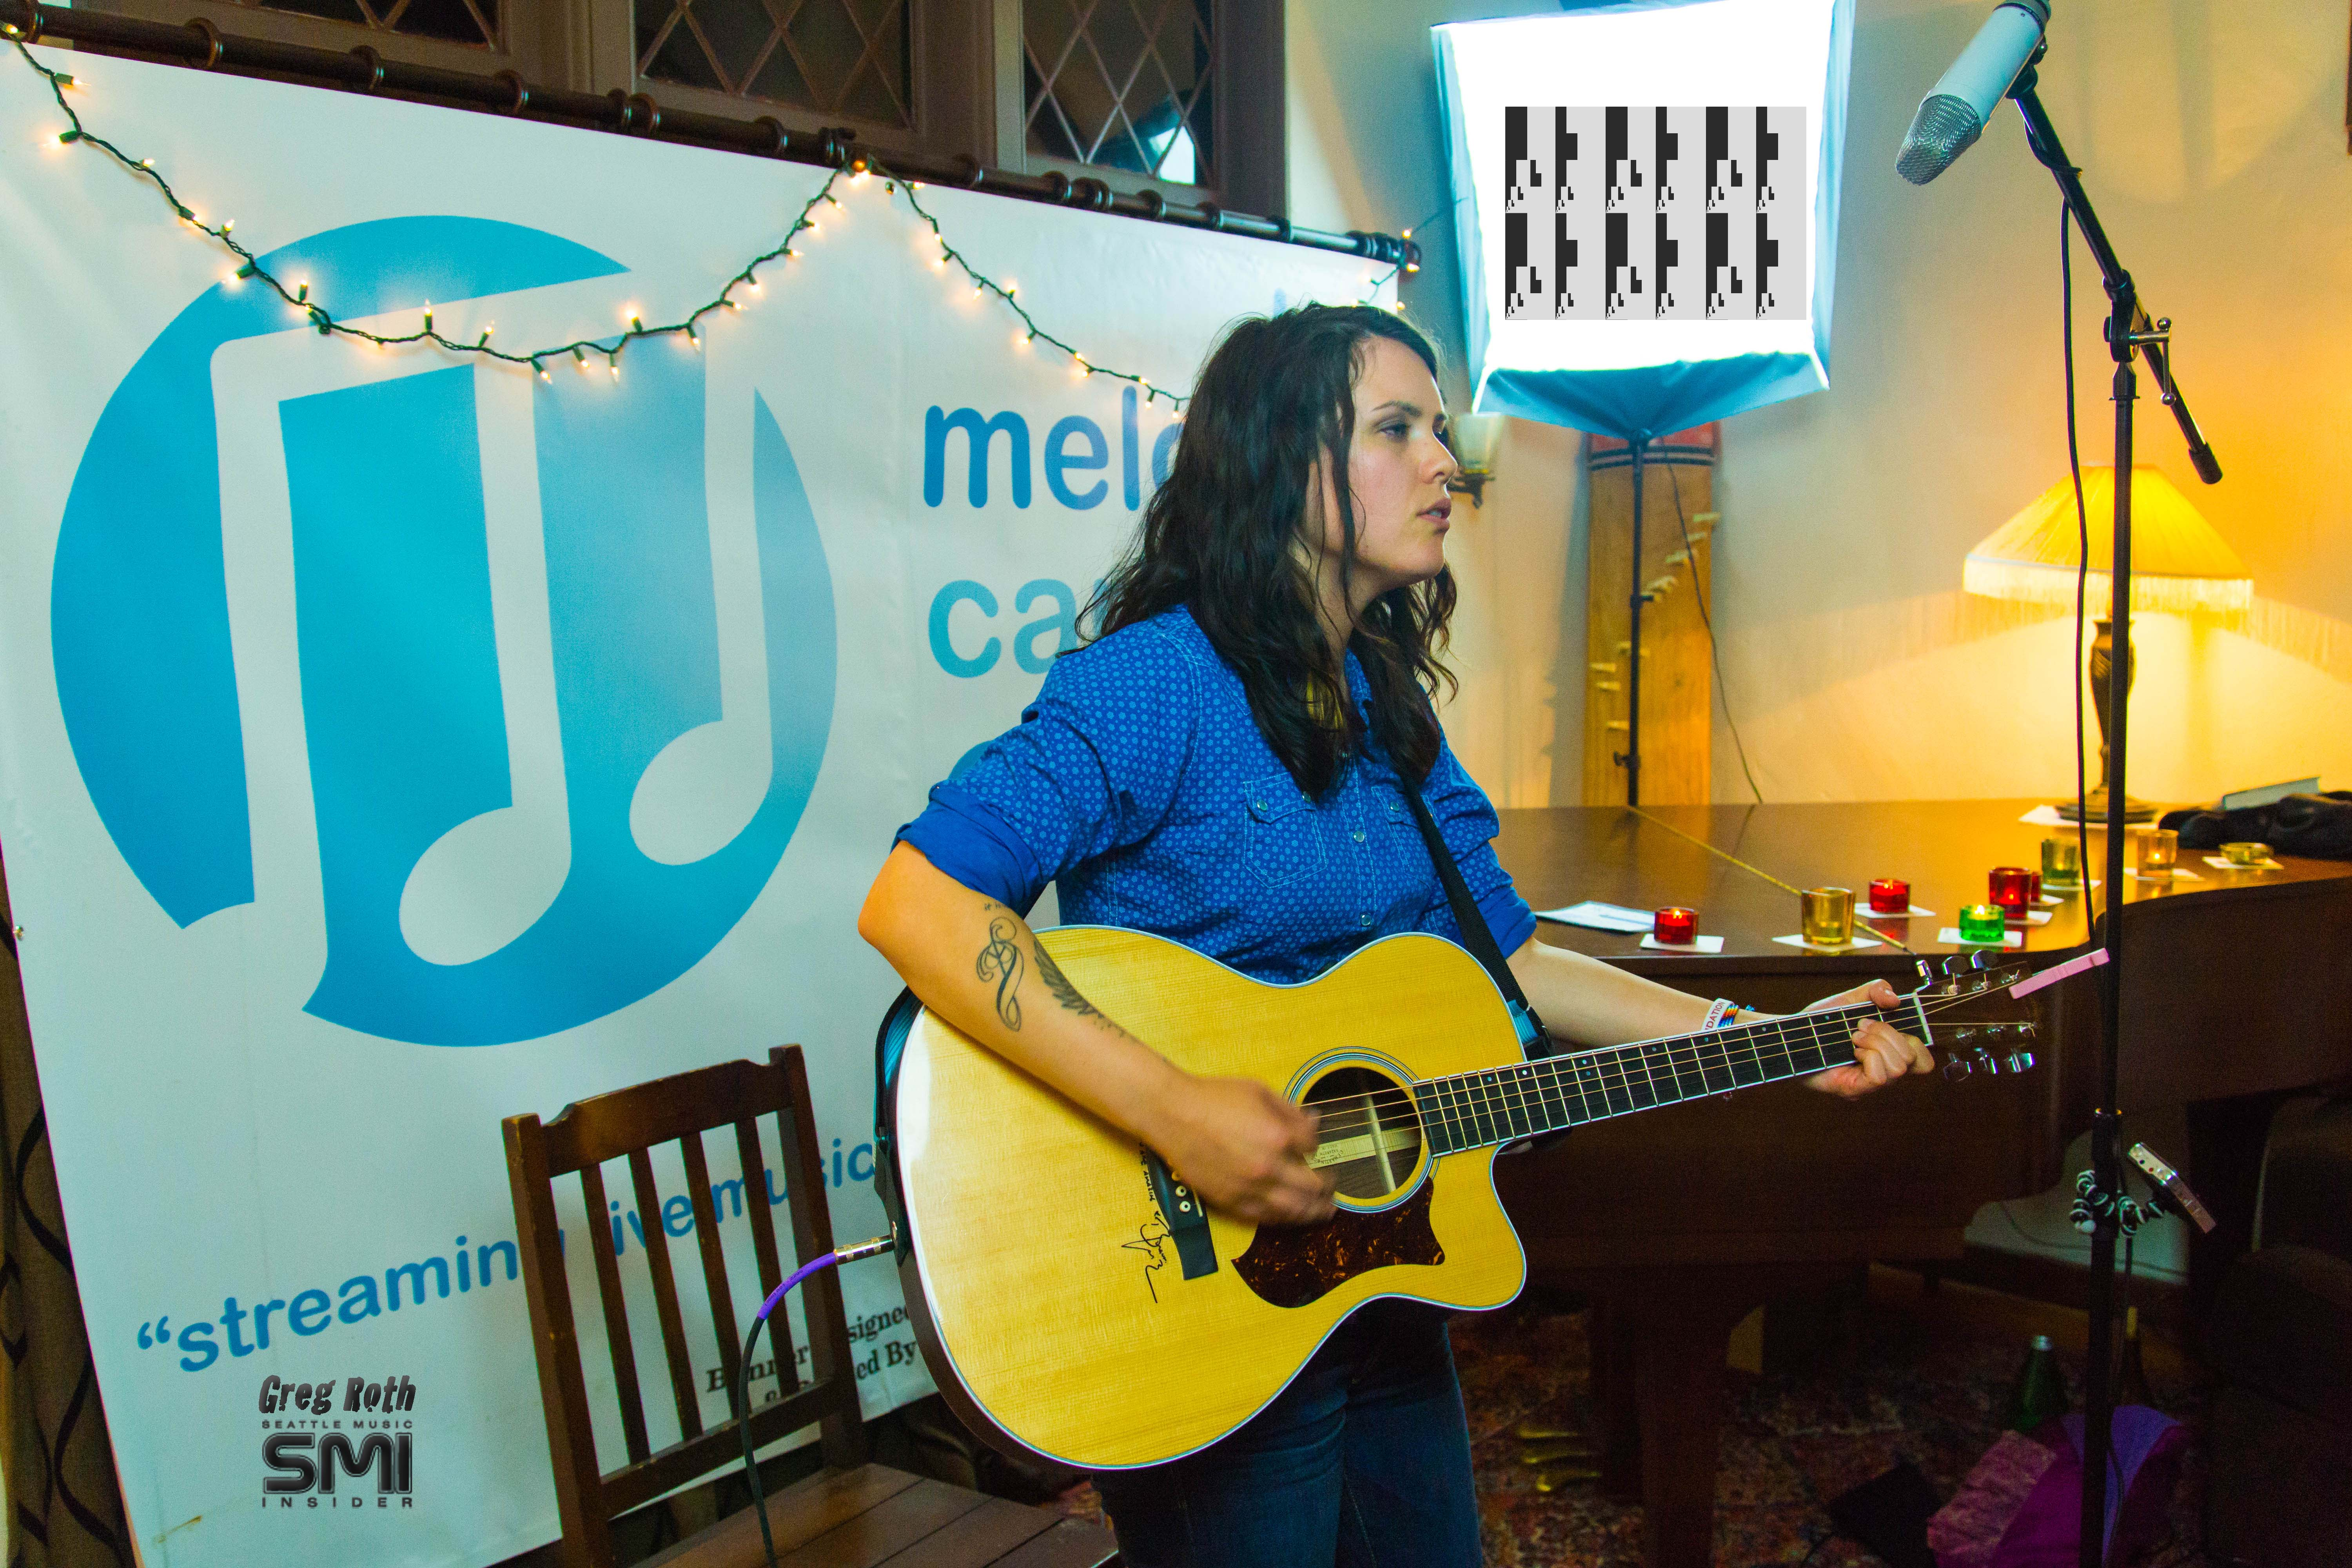 Kate Lynne Logan @ Seattle Living Room Show and Melodic Caring Project (9/15/12) Photo By Greg Roth